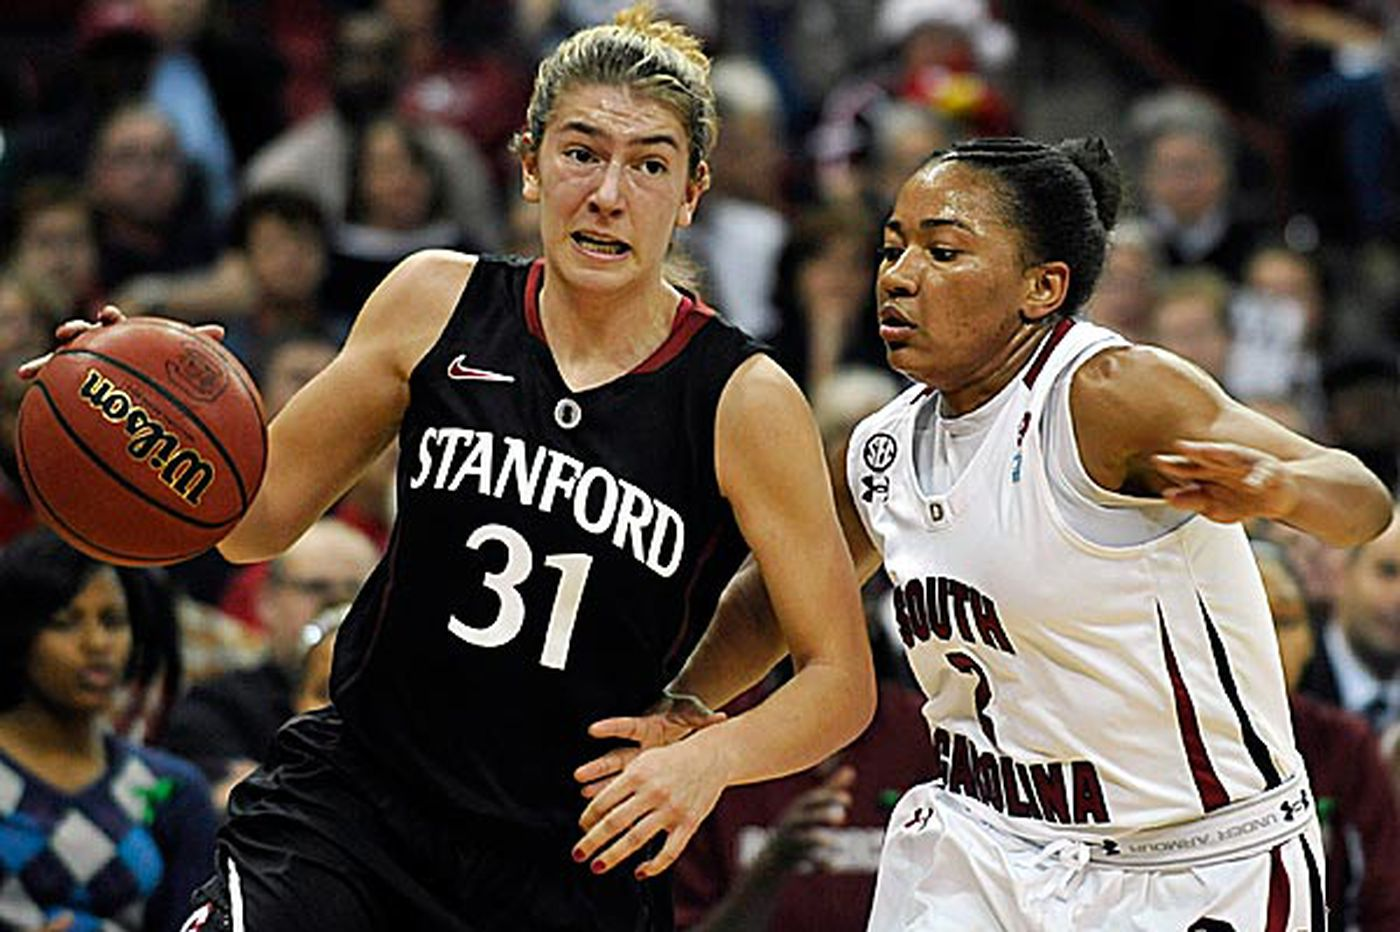 Women's College Basketball: No. 1 Stanford tips S. Carolina